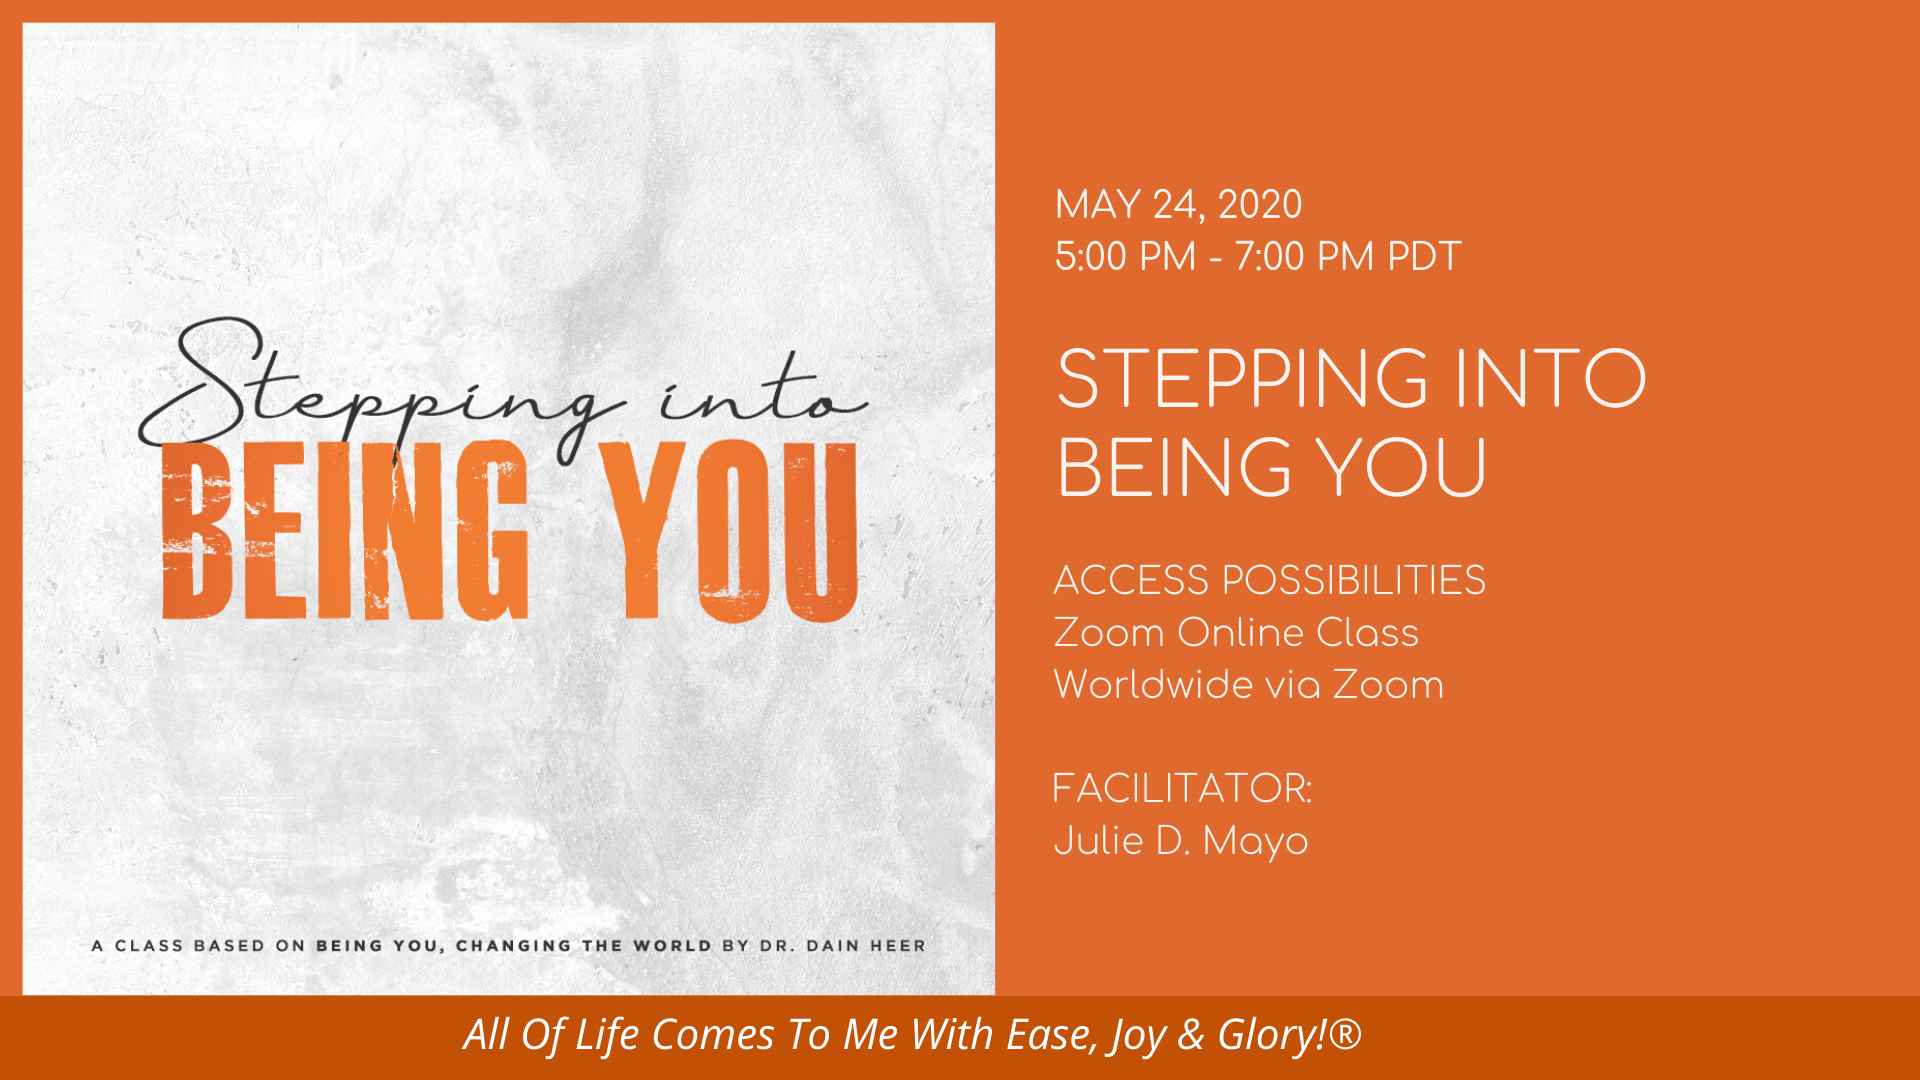 Stepping Into Being You Zoom Online Class Details | May 24, 2020